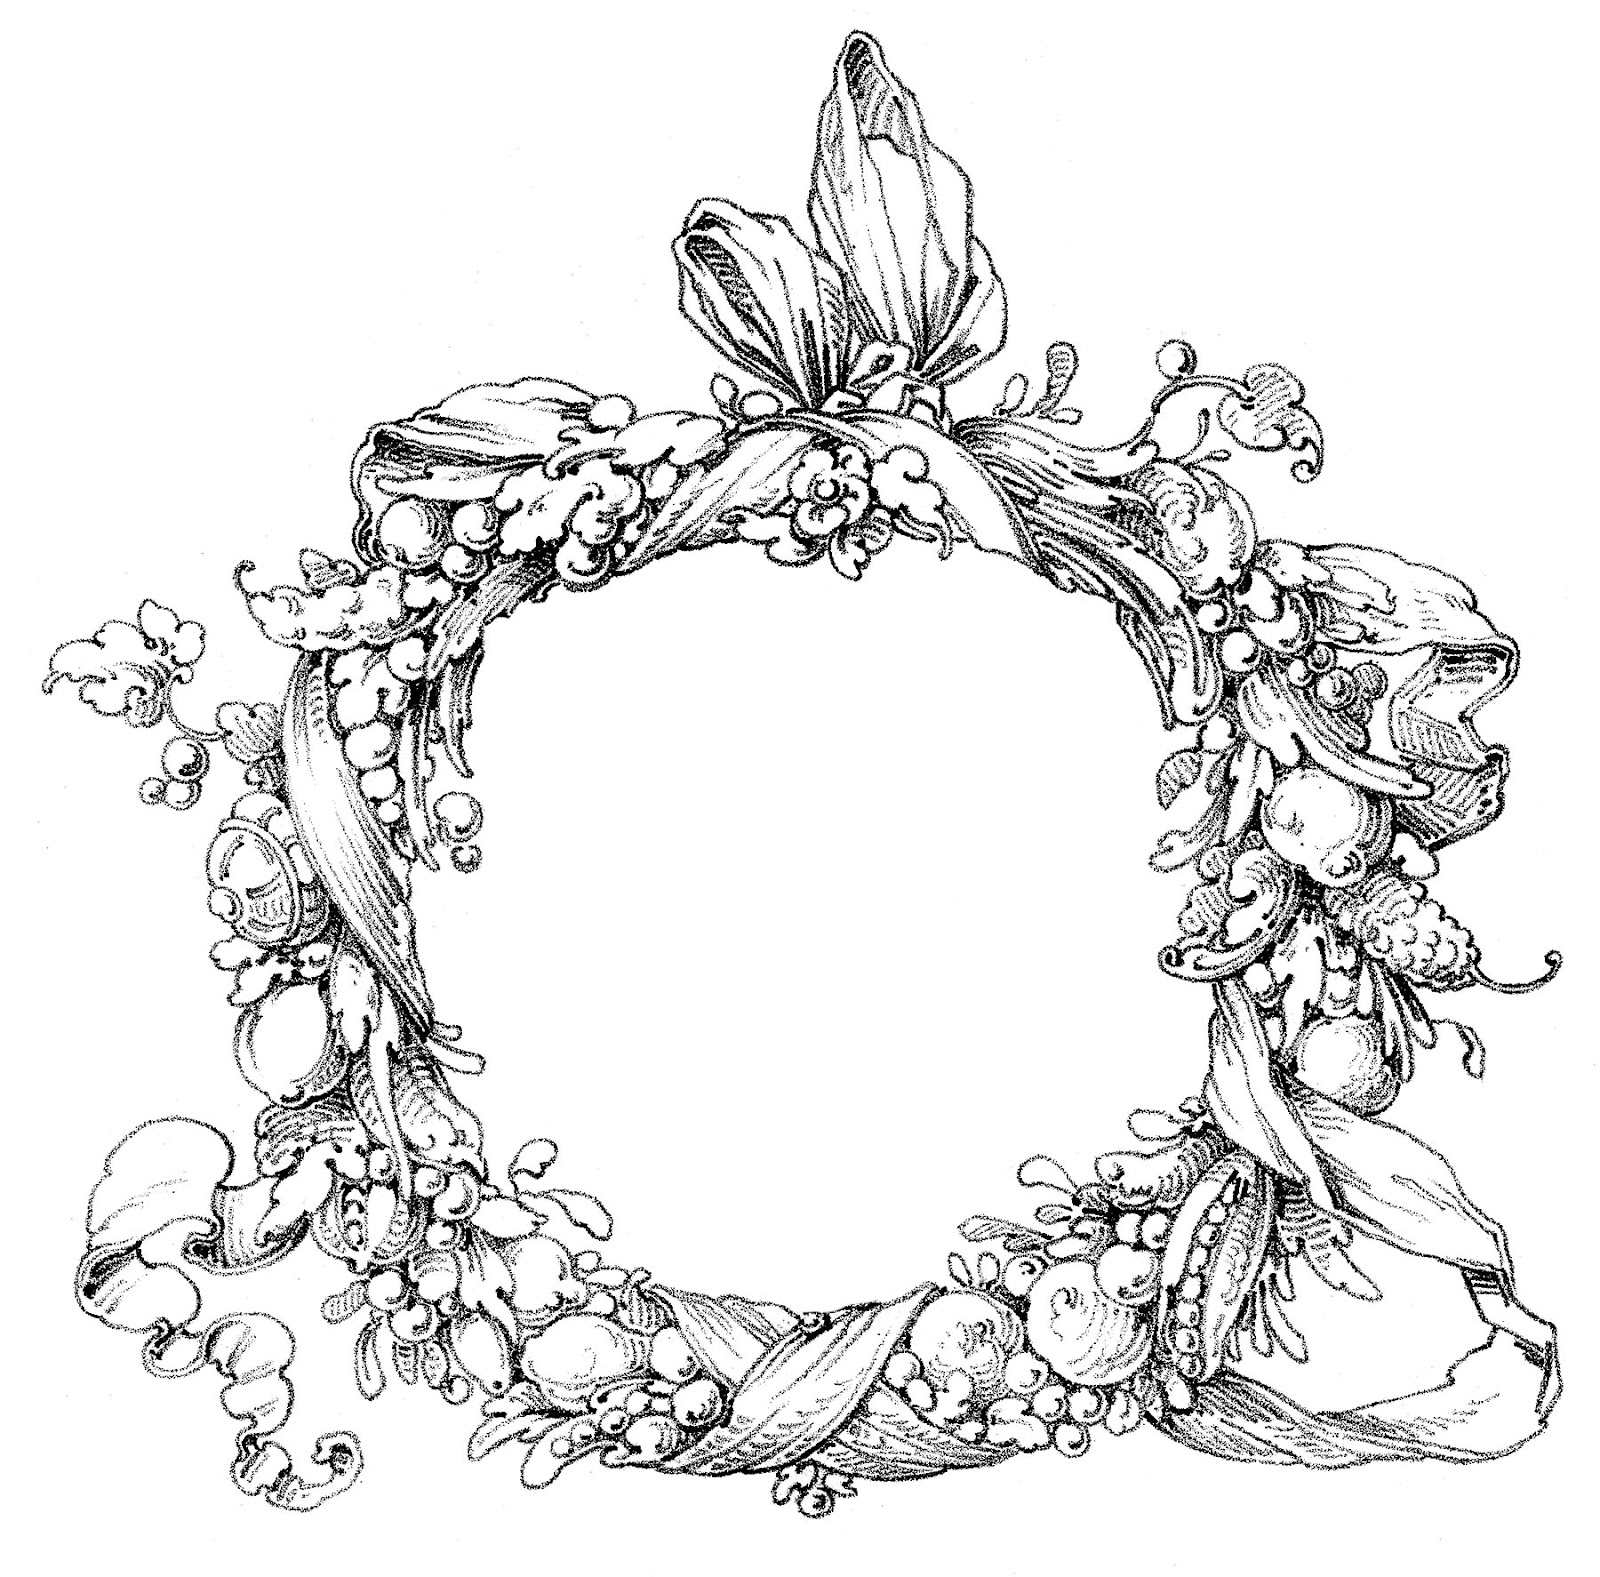 Wreath clipart old pen Vintage Graphics Clip Ornate Art